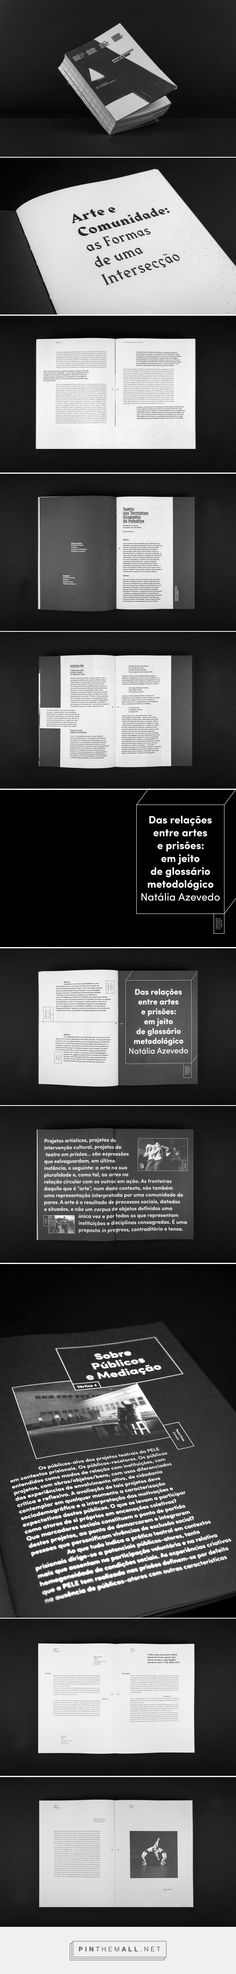 Arte & Comunidade on Behance... - a grouped images picture - Pin Them All